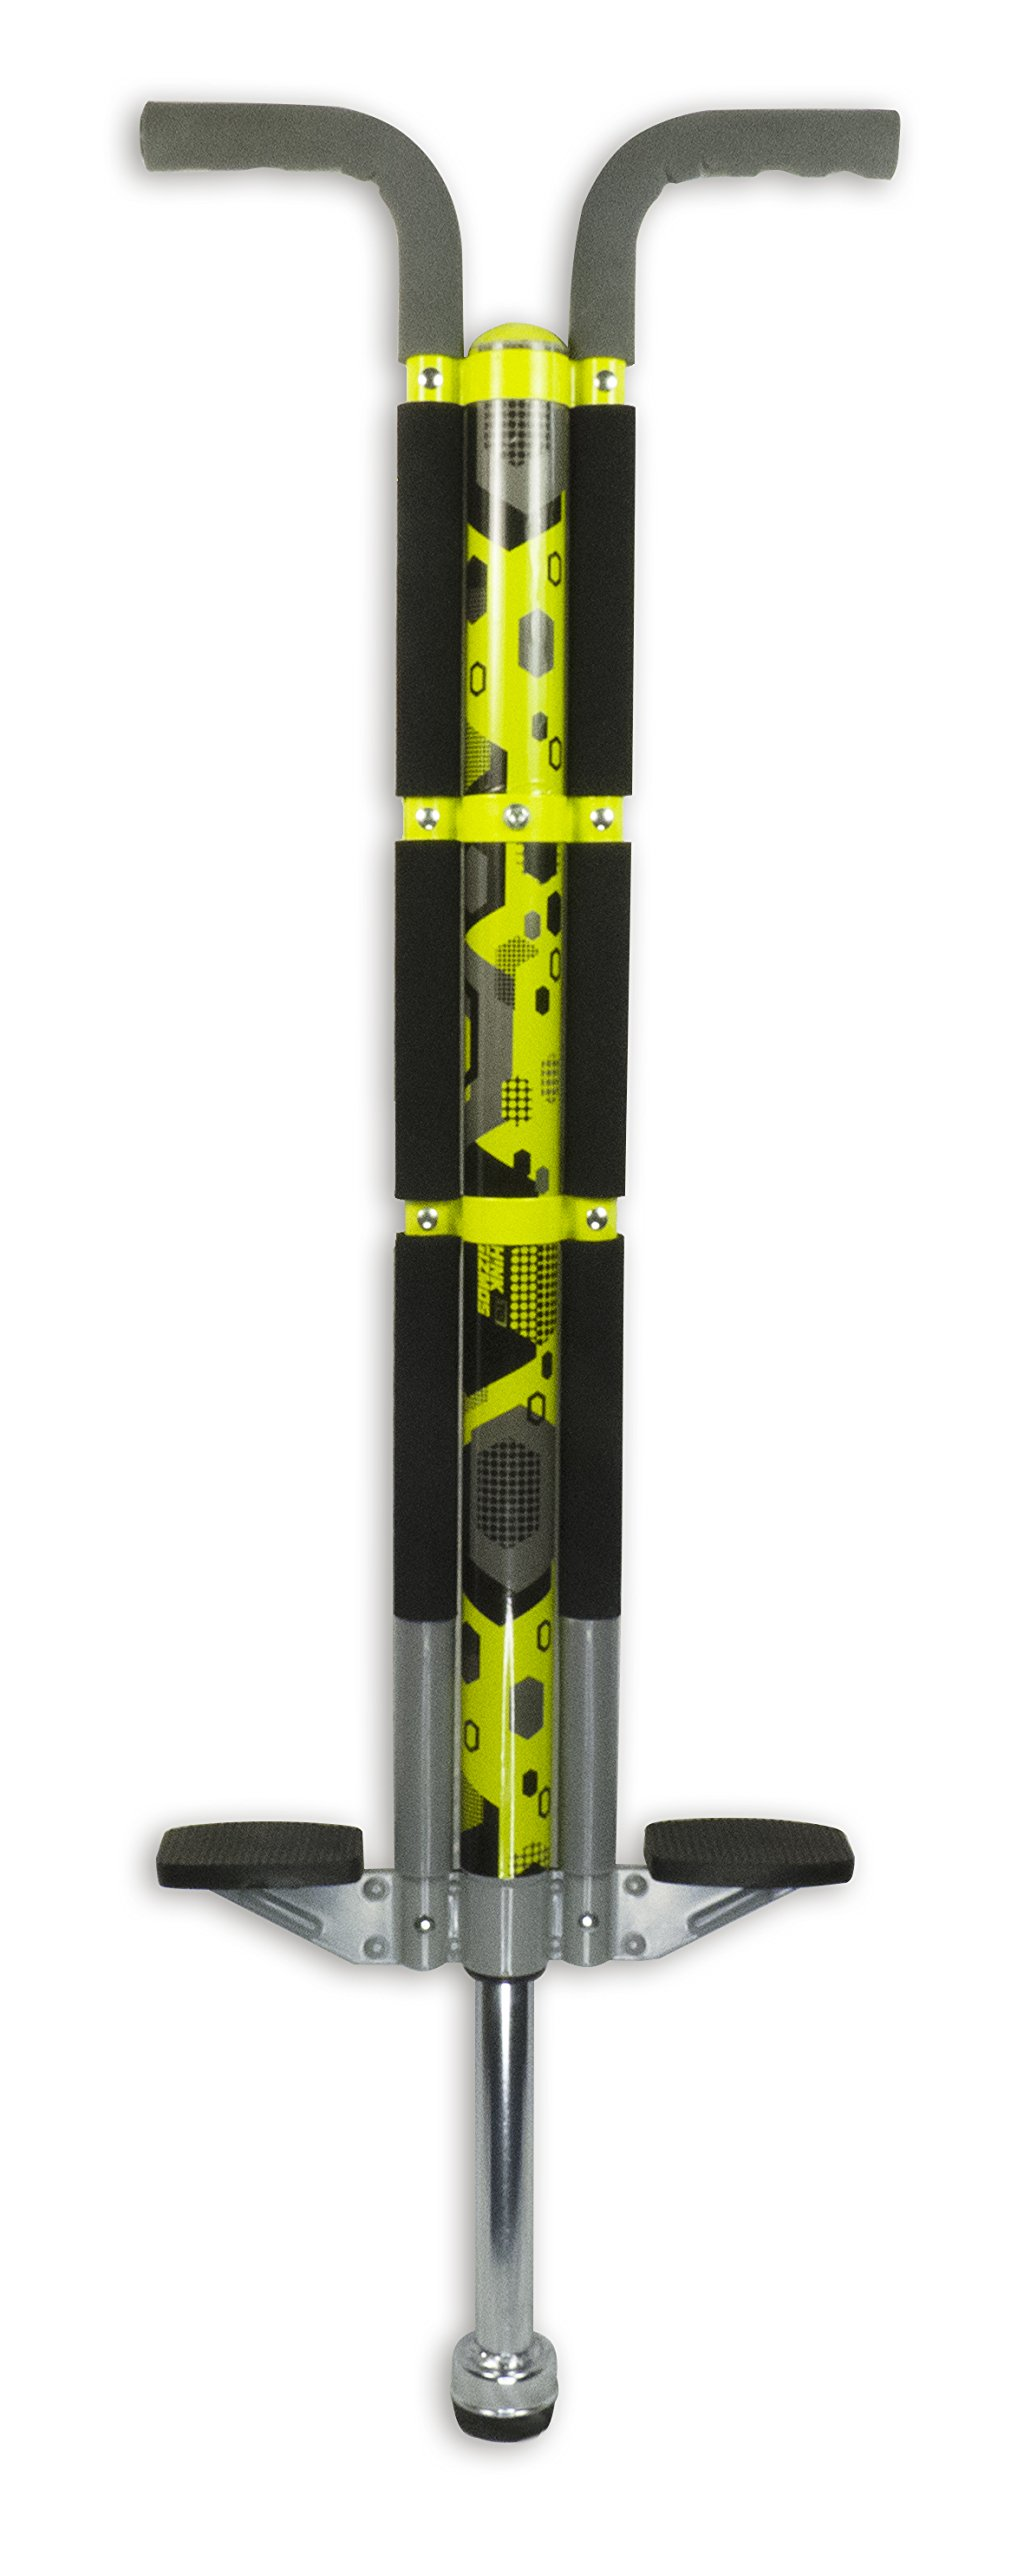 Think Gizmos Pogo Stick For Riders 80lbs To 160lbs - Aero Legend Pogo Stick For Boys & Girls (& Light Adults) - Quality Solid ConstructionBy ThinkGizmos (Yellow & Black)